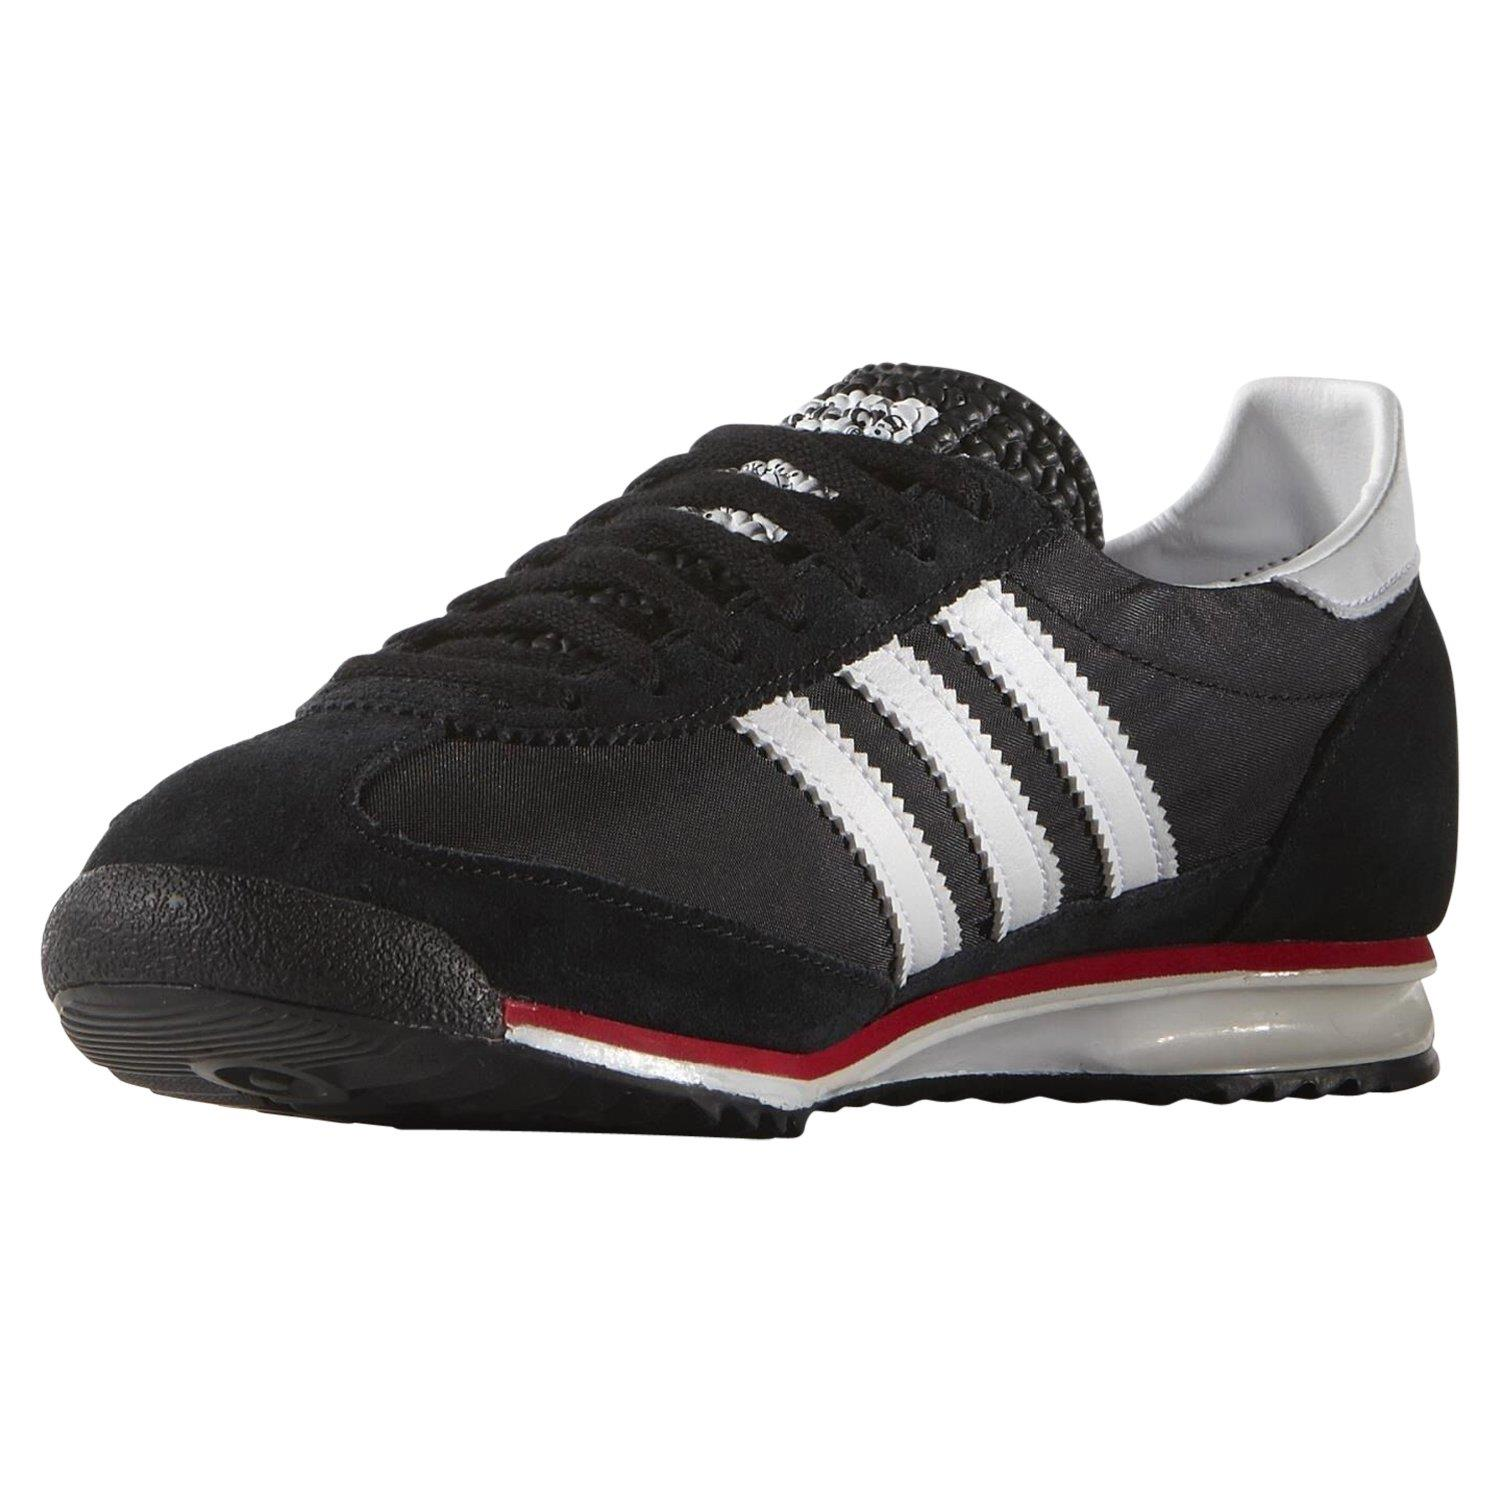 adidas-ORIGINALS-MEN-039-S-SL-72-VINTAGE-TRAINERS-BLACK-NAVY-WHITE-SNEAKERS-SHOES miniatuur 5